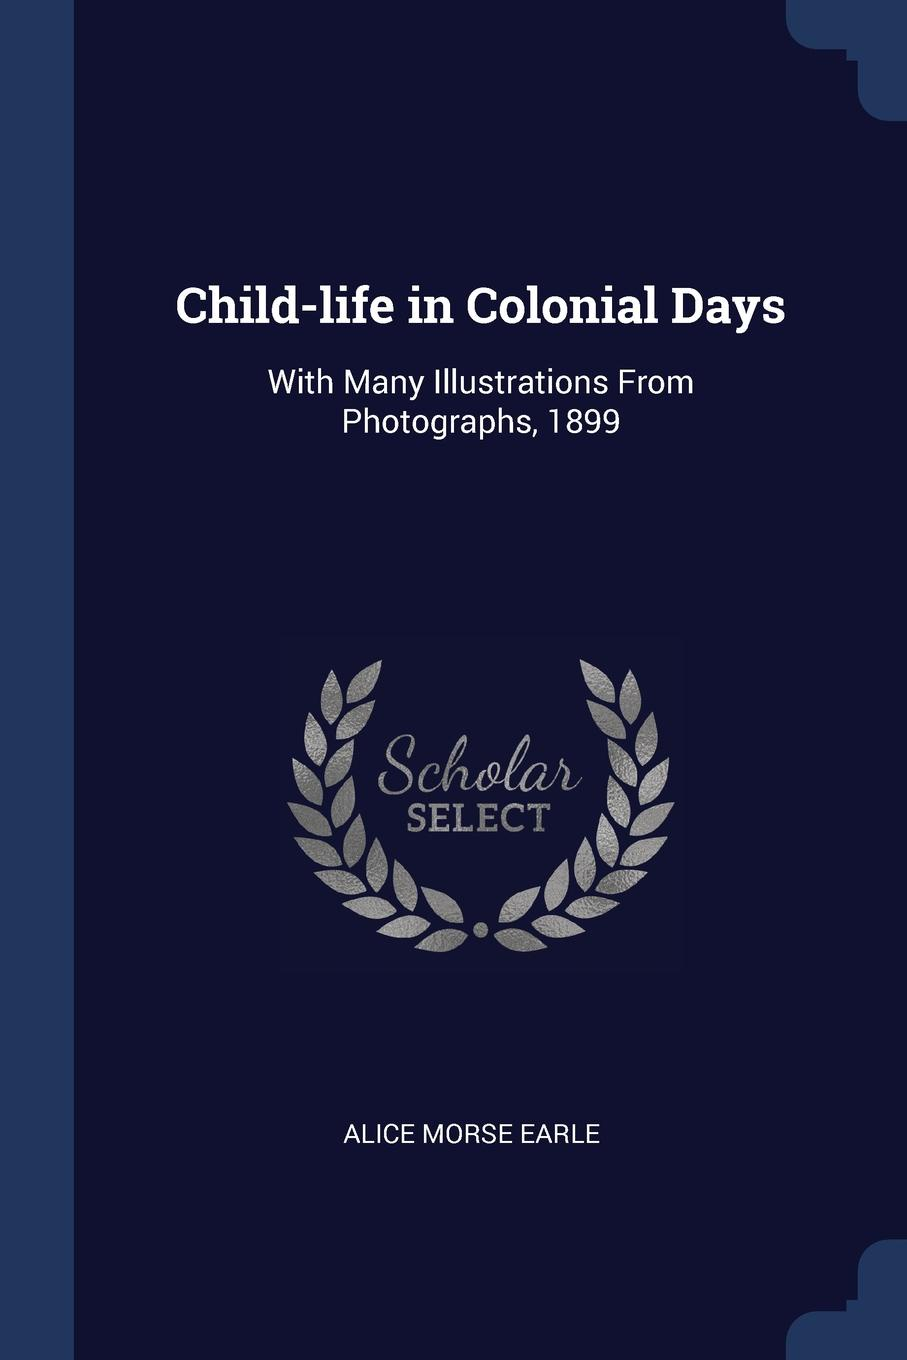 Child-life in Colonial Days. With Many Illustrations From Photographs, 1899. Alice Morse Earle